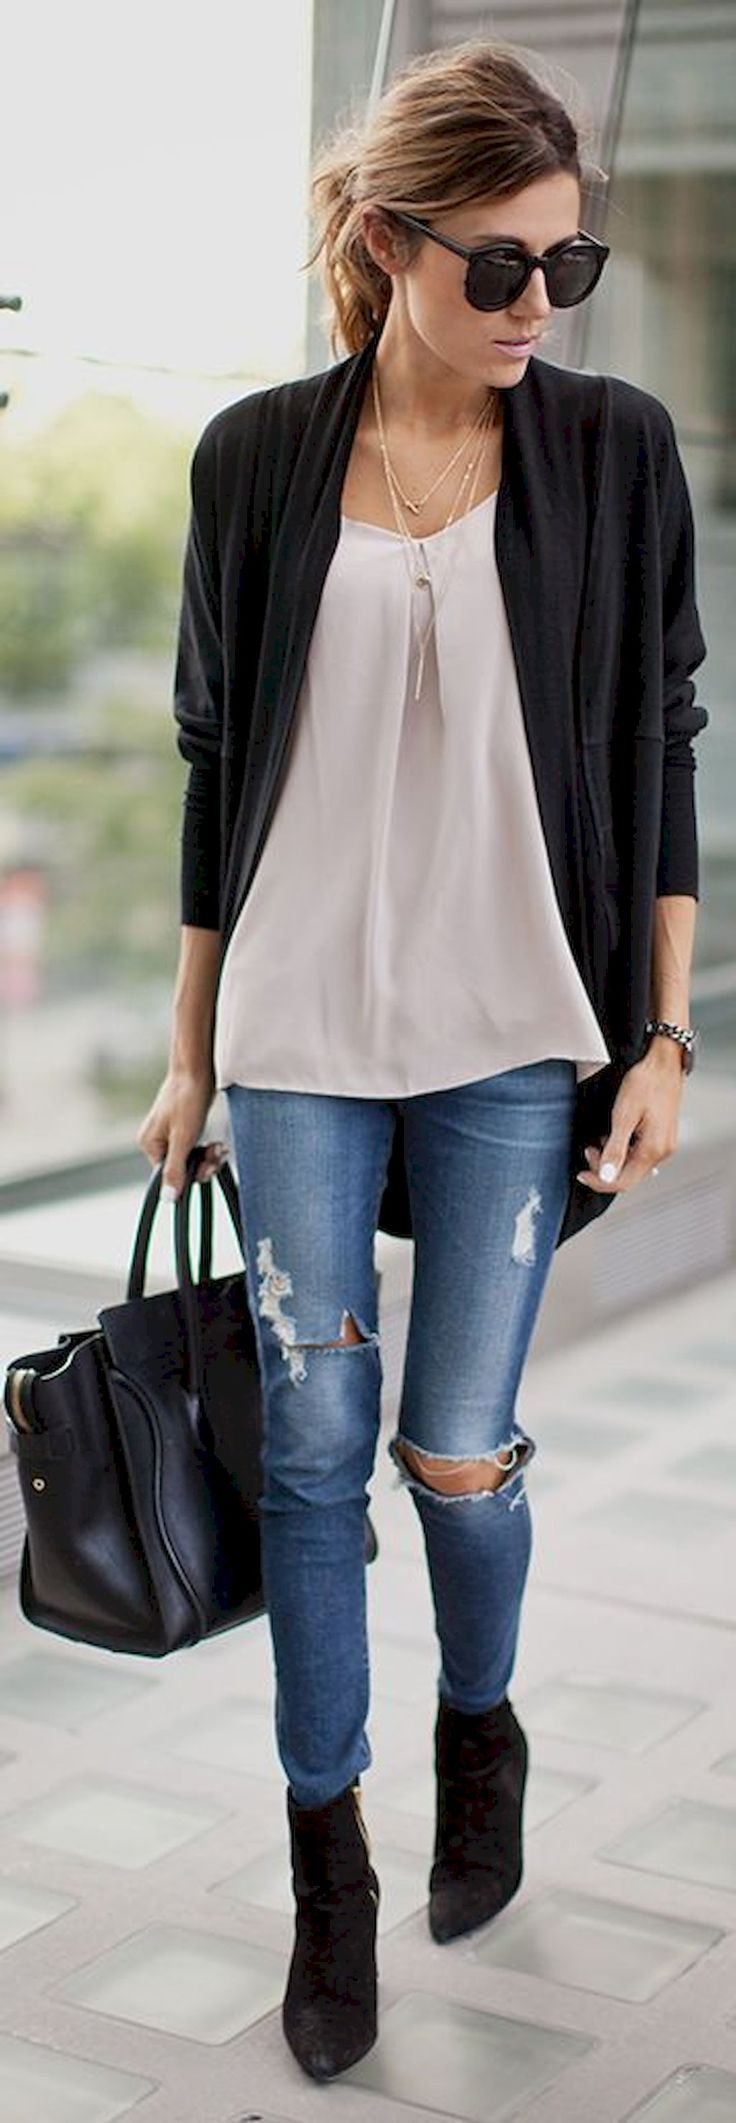 Adorable 80+ Fall Outfit Ideas with Cardigans for Women https://bitecloth.com/2018/01/17/80-fall-outfit-ideas-cardigans-women/